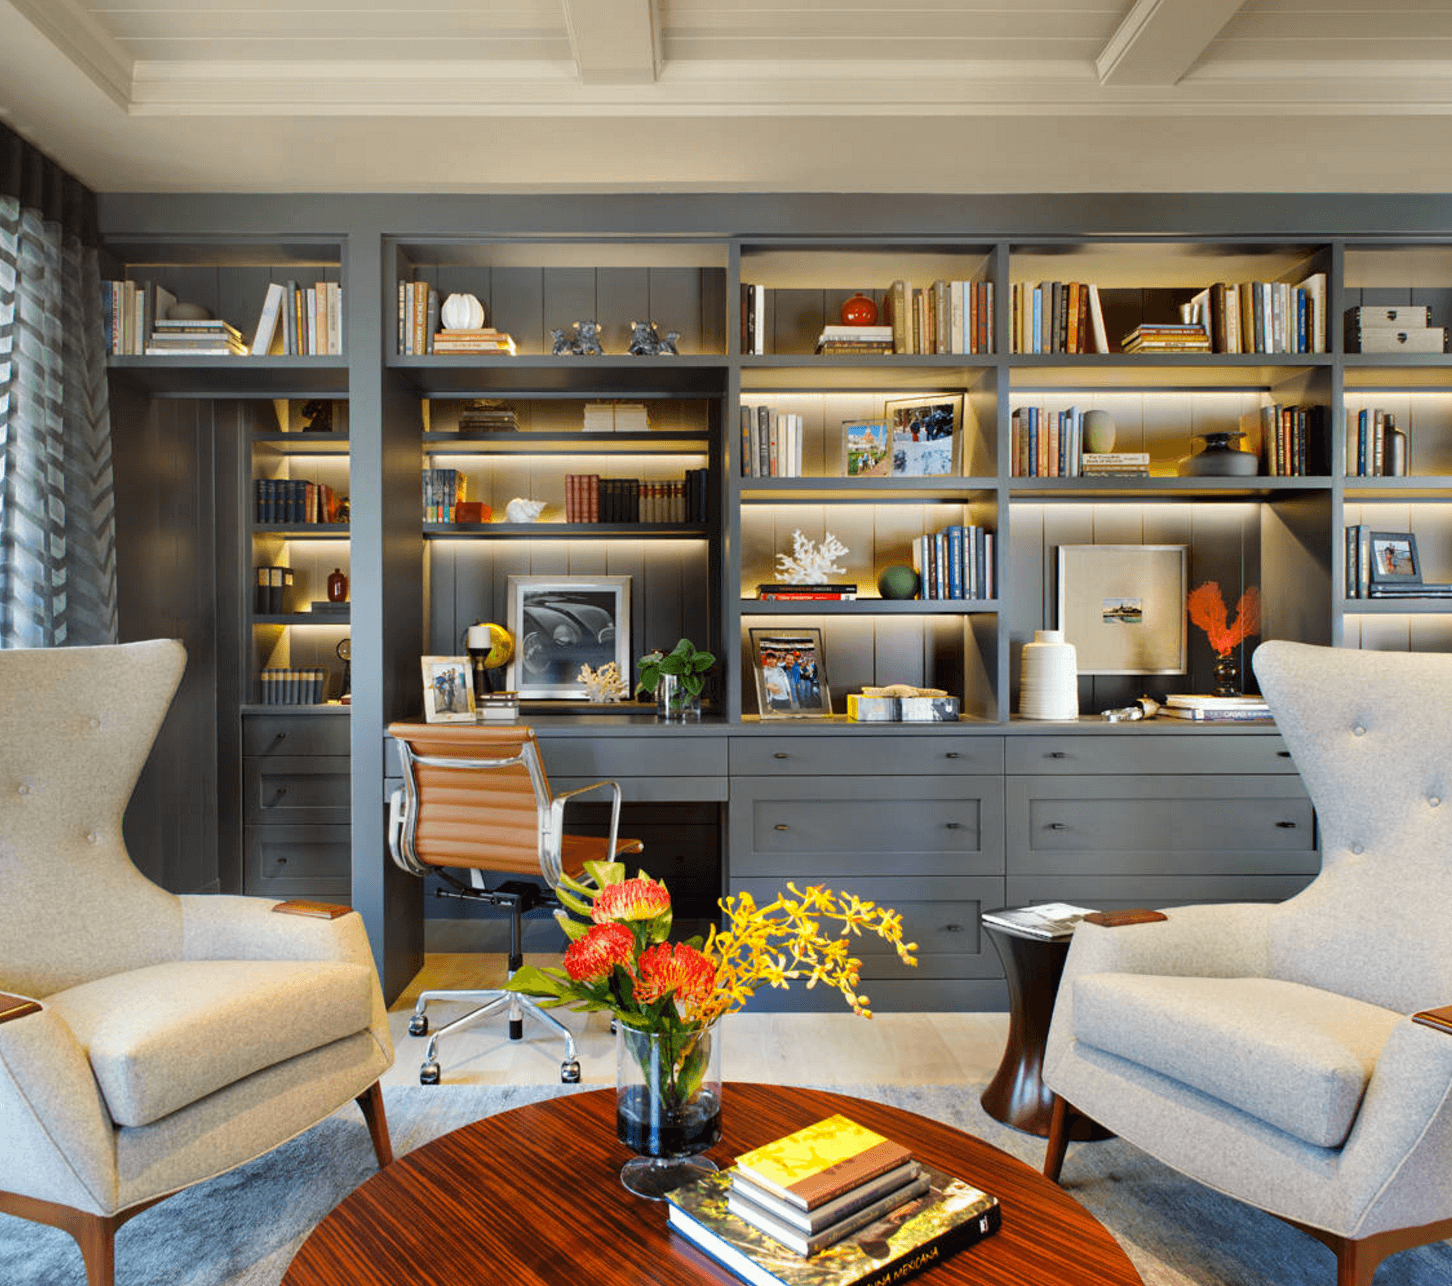 Home Office Designs Living Room Decorating Ideas: 4 Modern Ideas For Your Home Office Décor